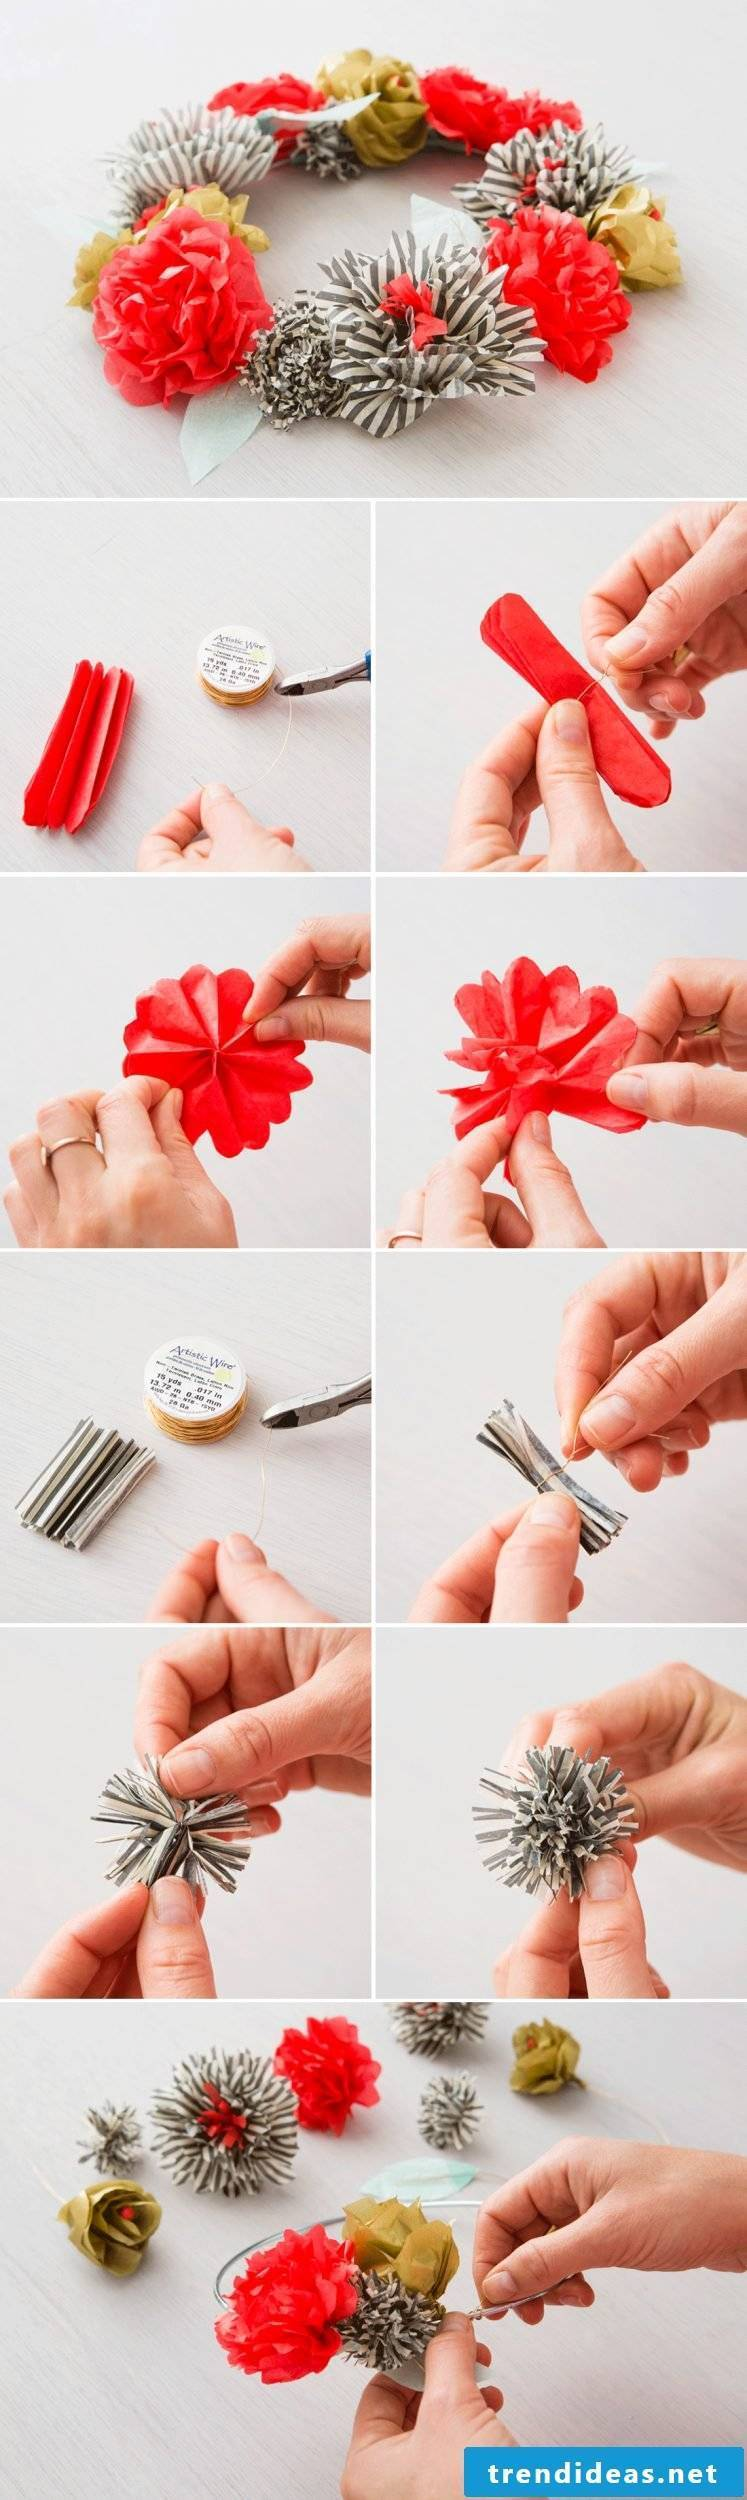 Make your own fabric flowers or DIY paper flower wreath yourself